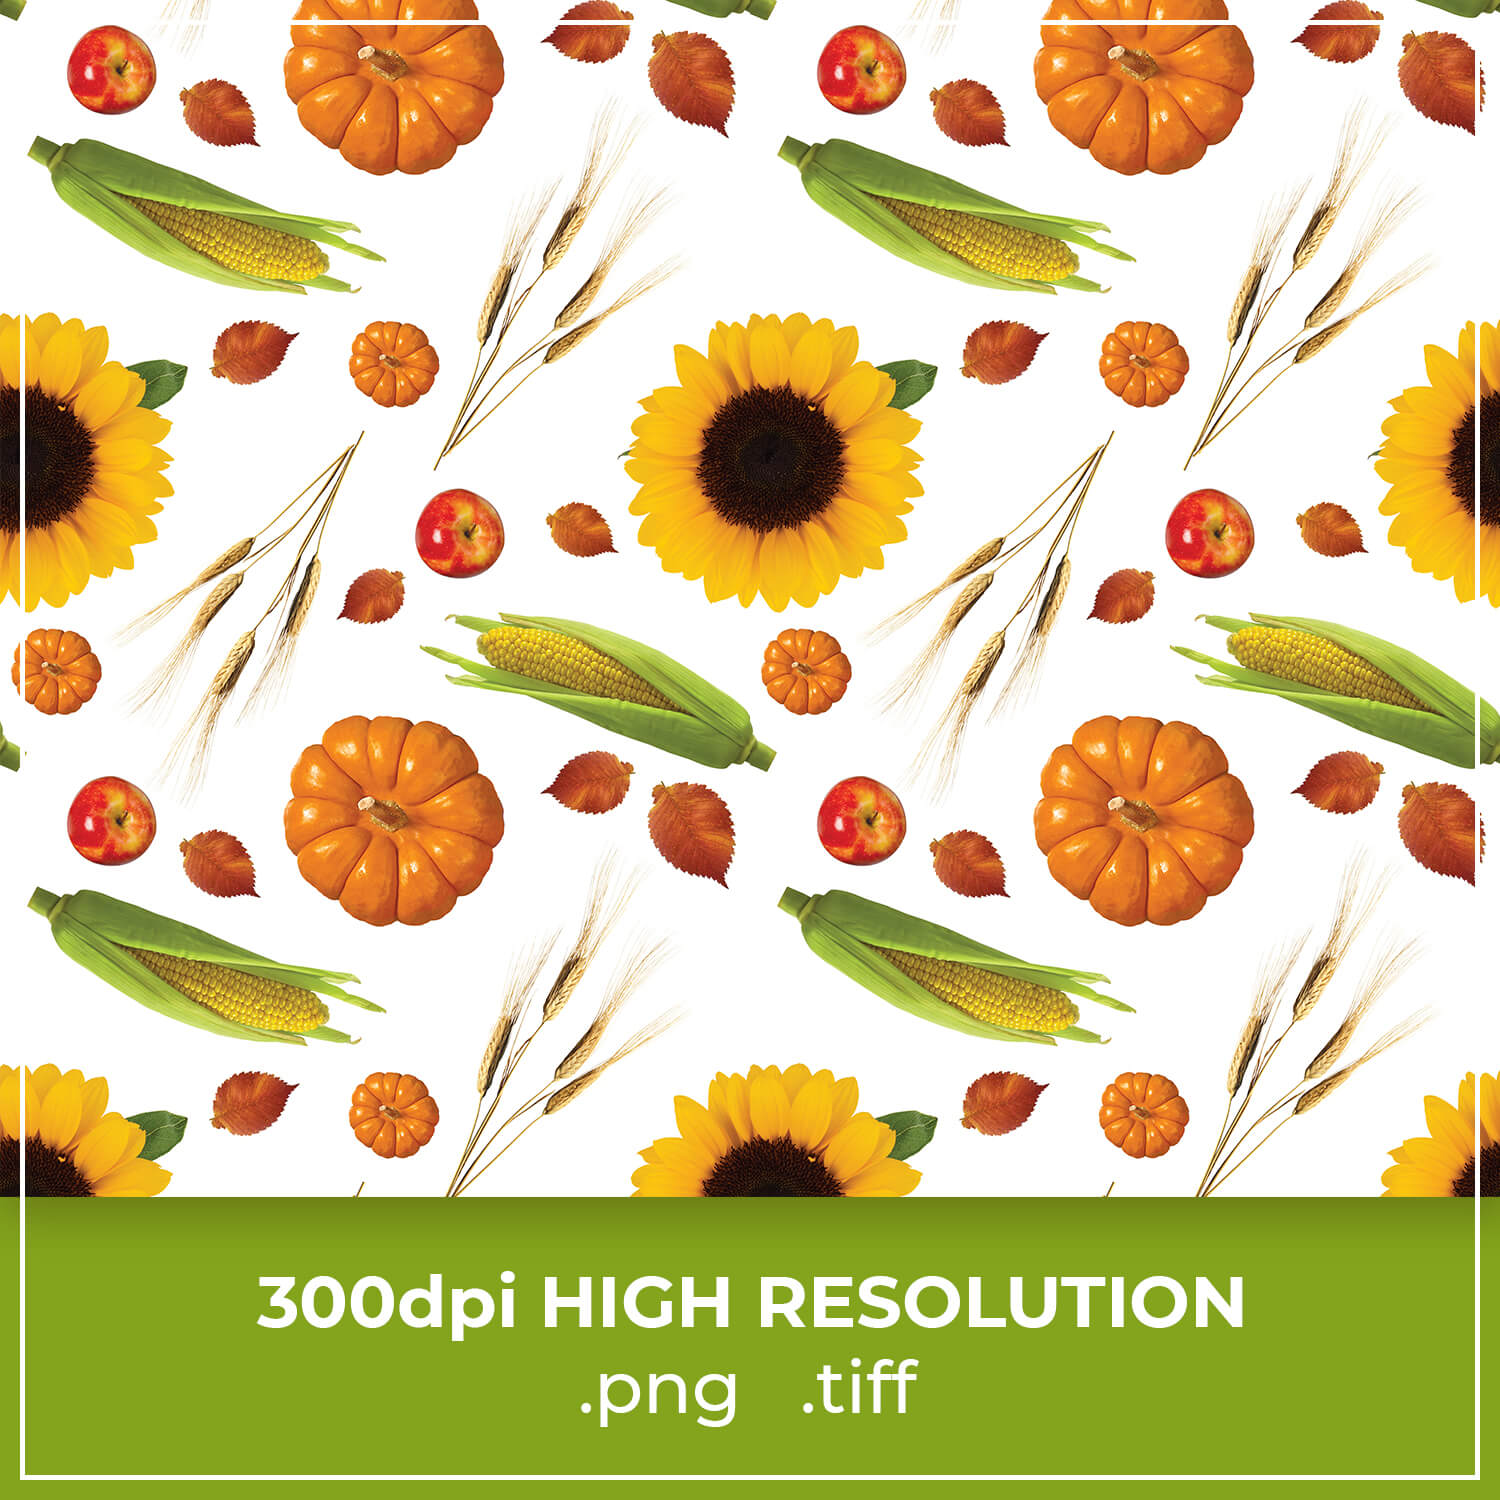 Free Corn & Sunflowers Patterns cover image.